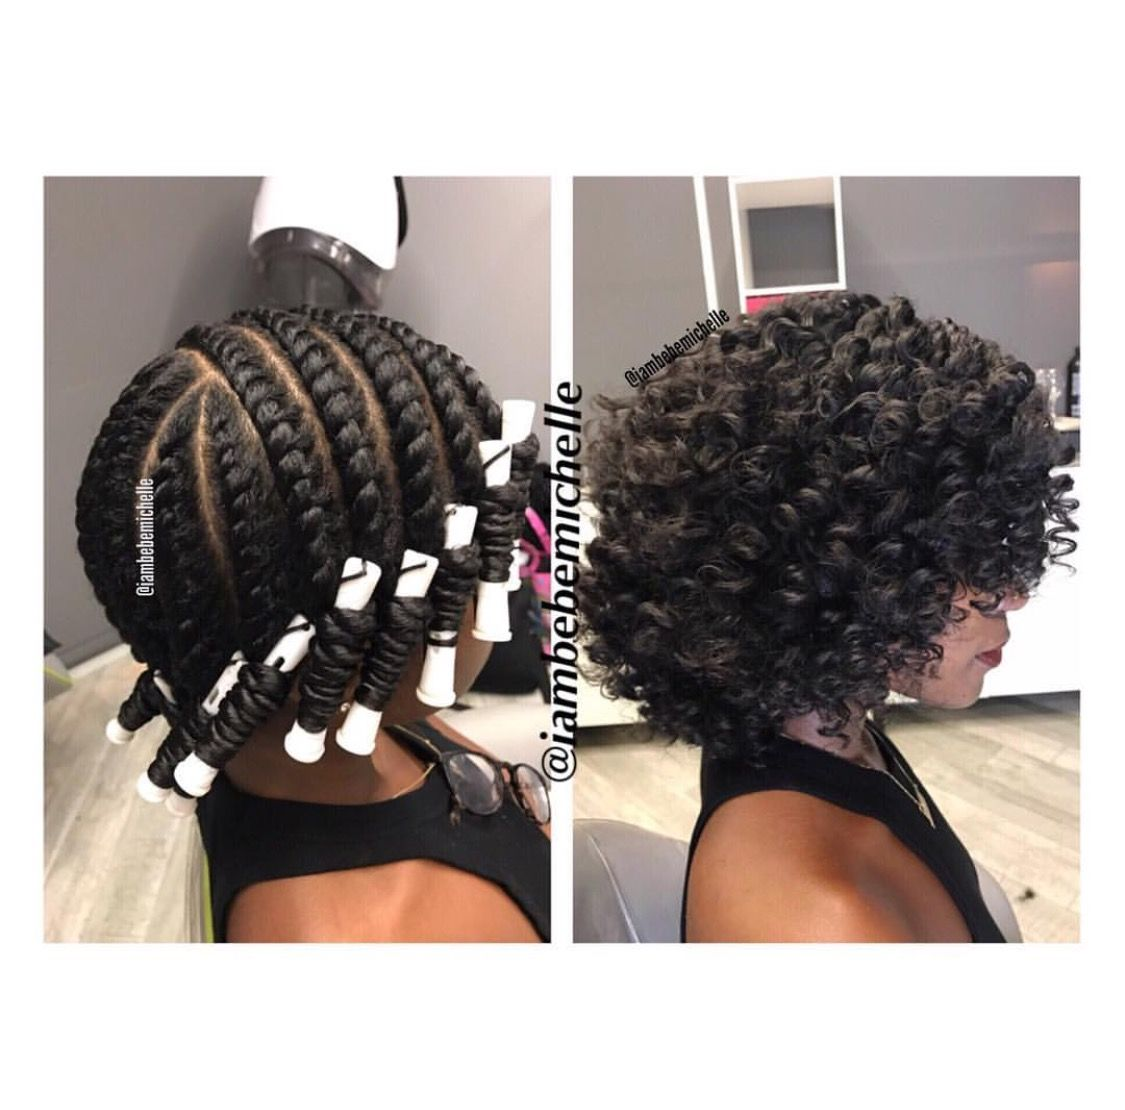 Pin by Peachy on Natural HAIR donut CARE  Pinterest